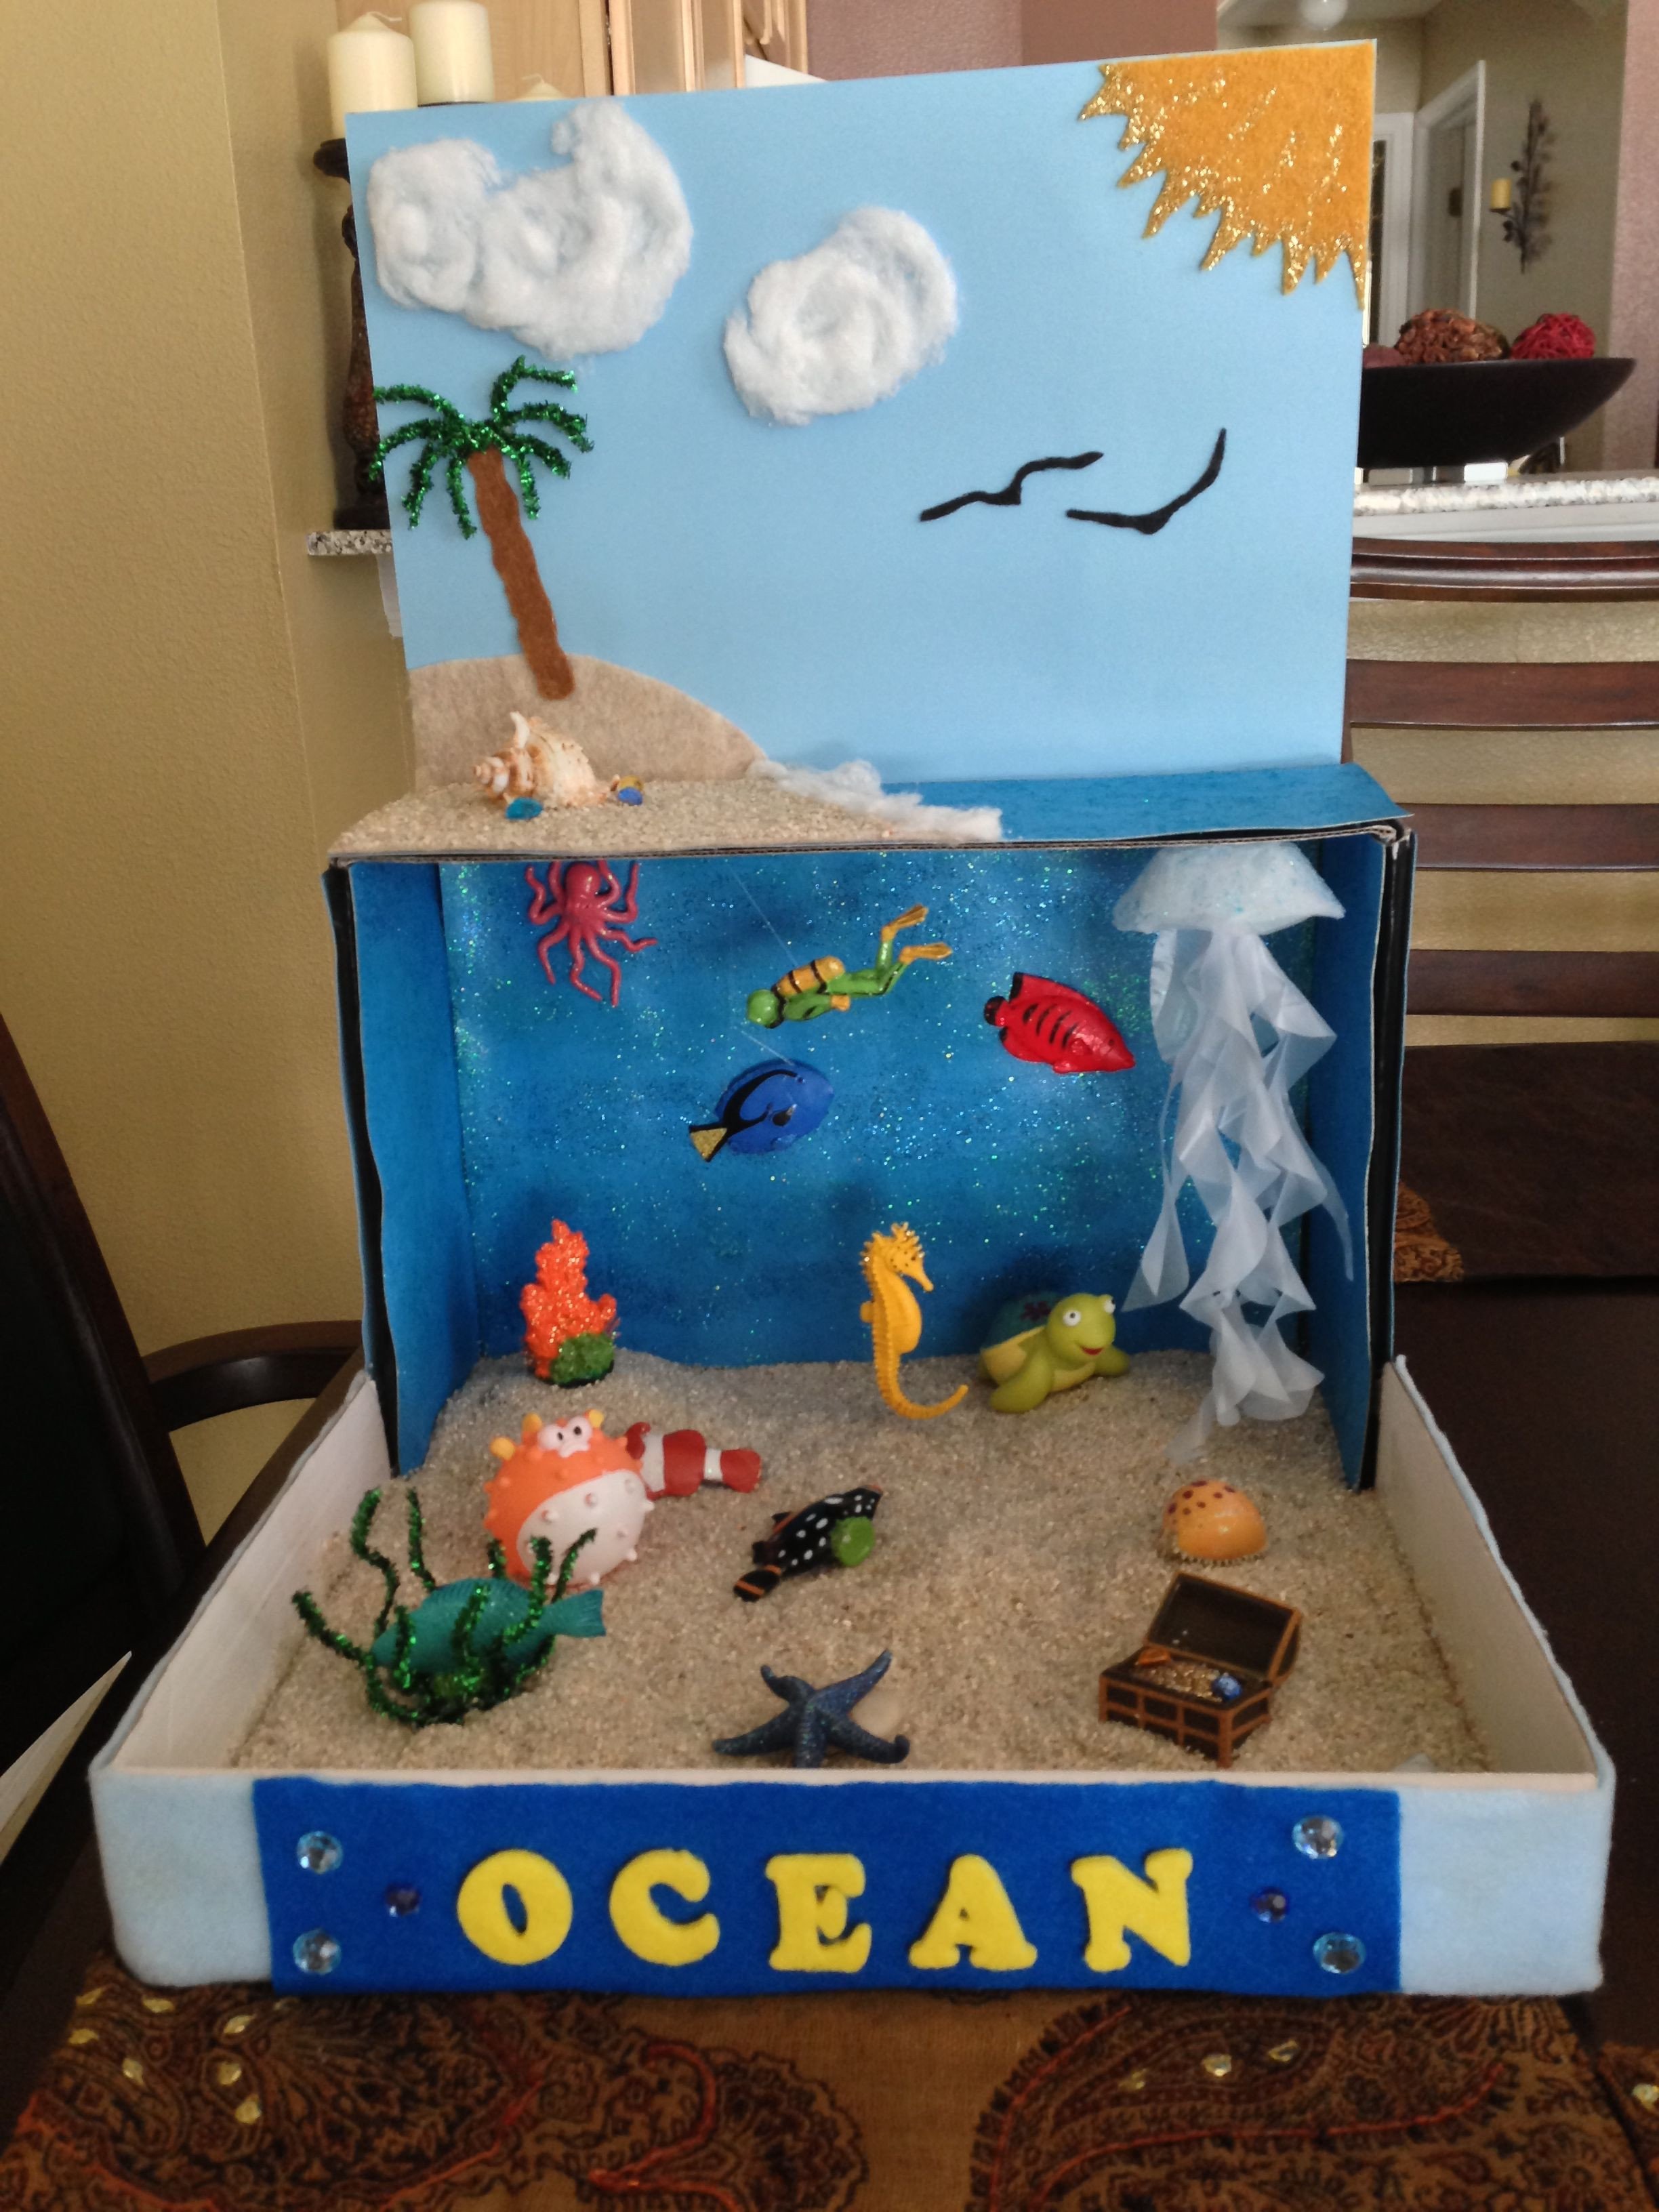 Best ideas about Kids Project Ideas . Save or Pin Ocean diorama for school project Idea for Henry 2nd Now.